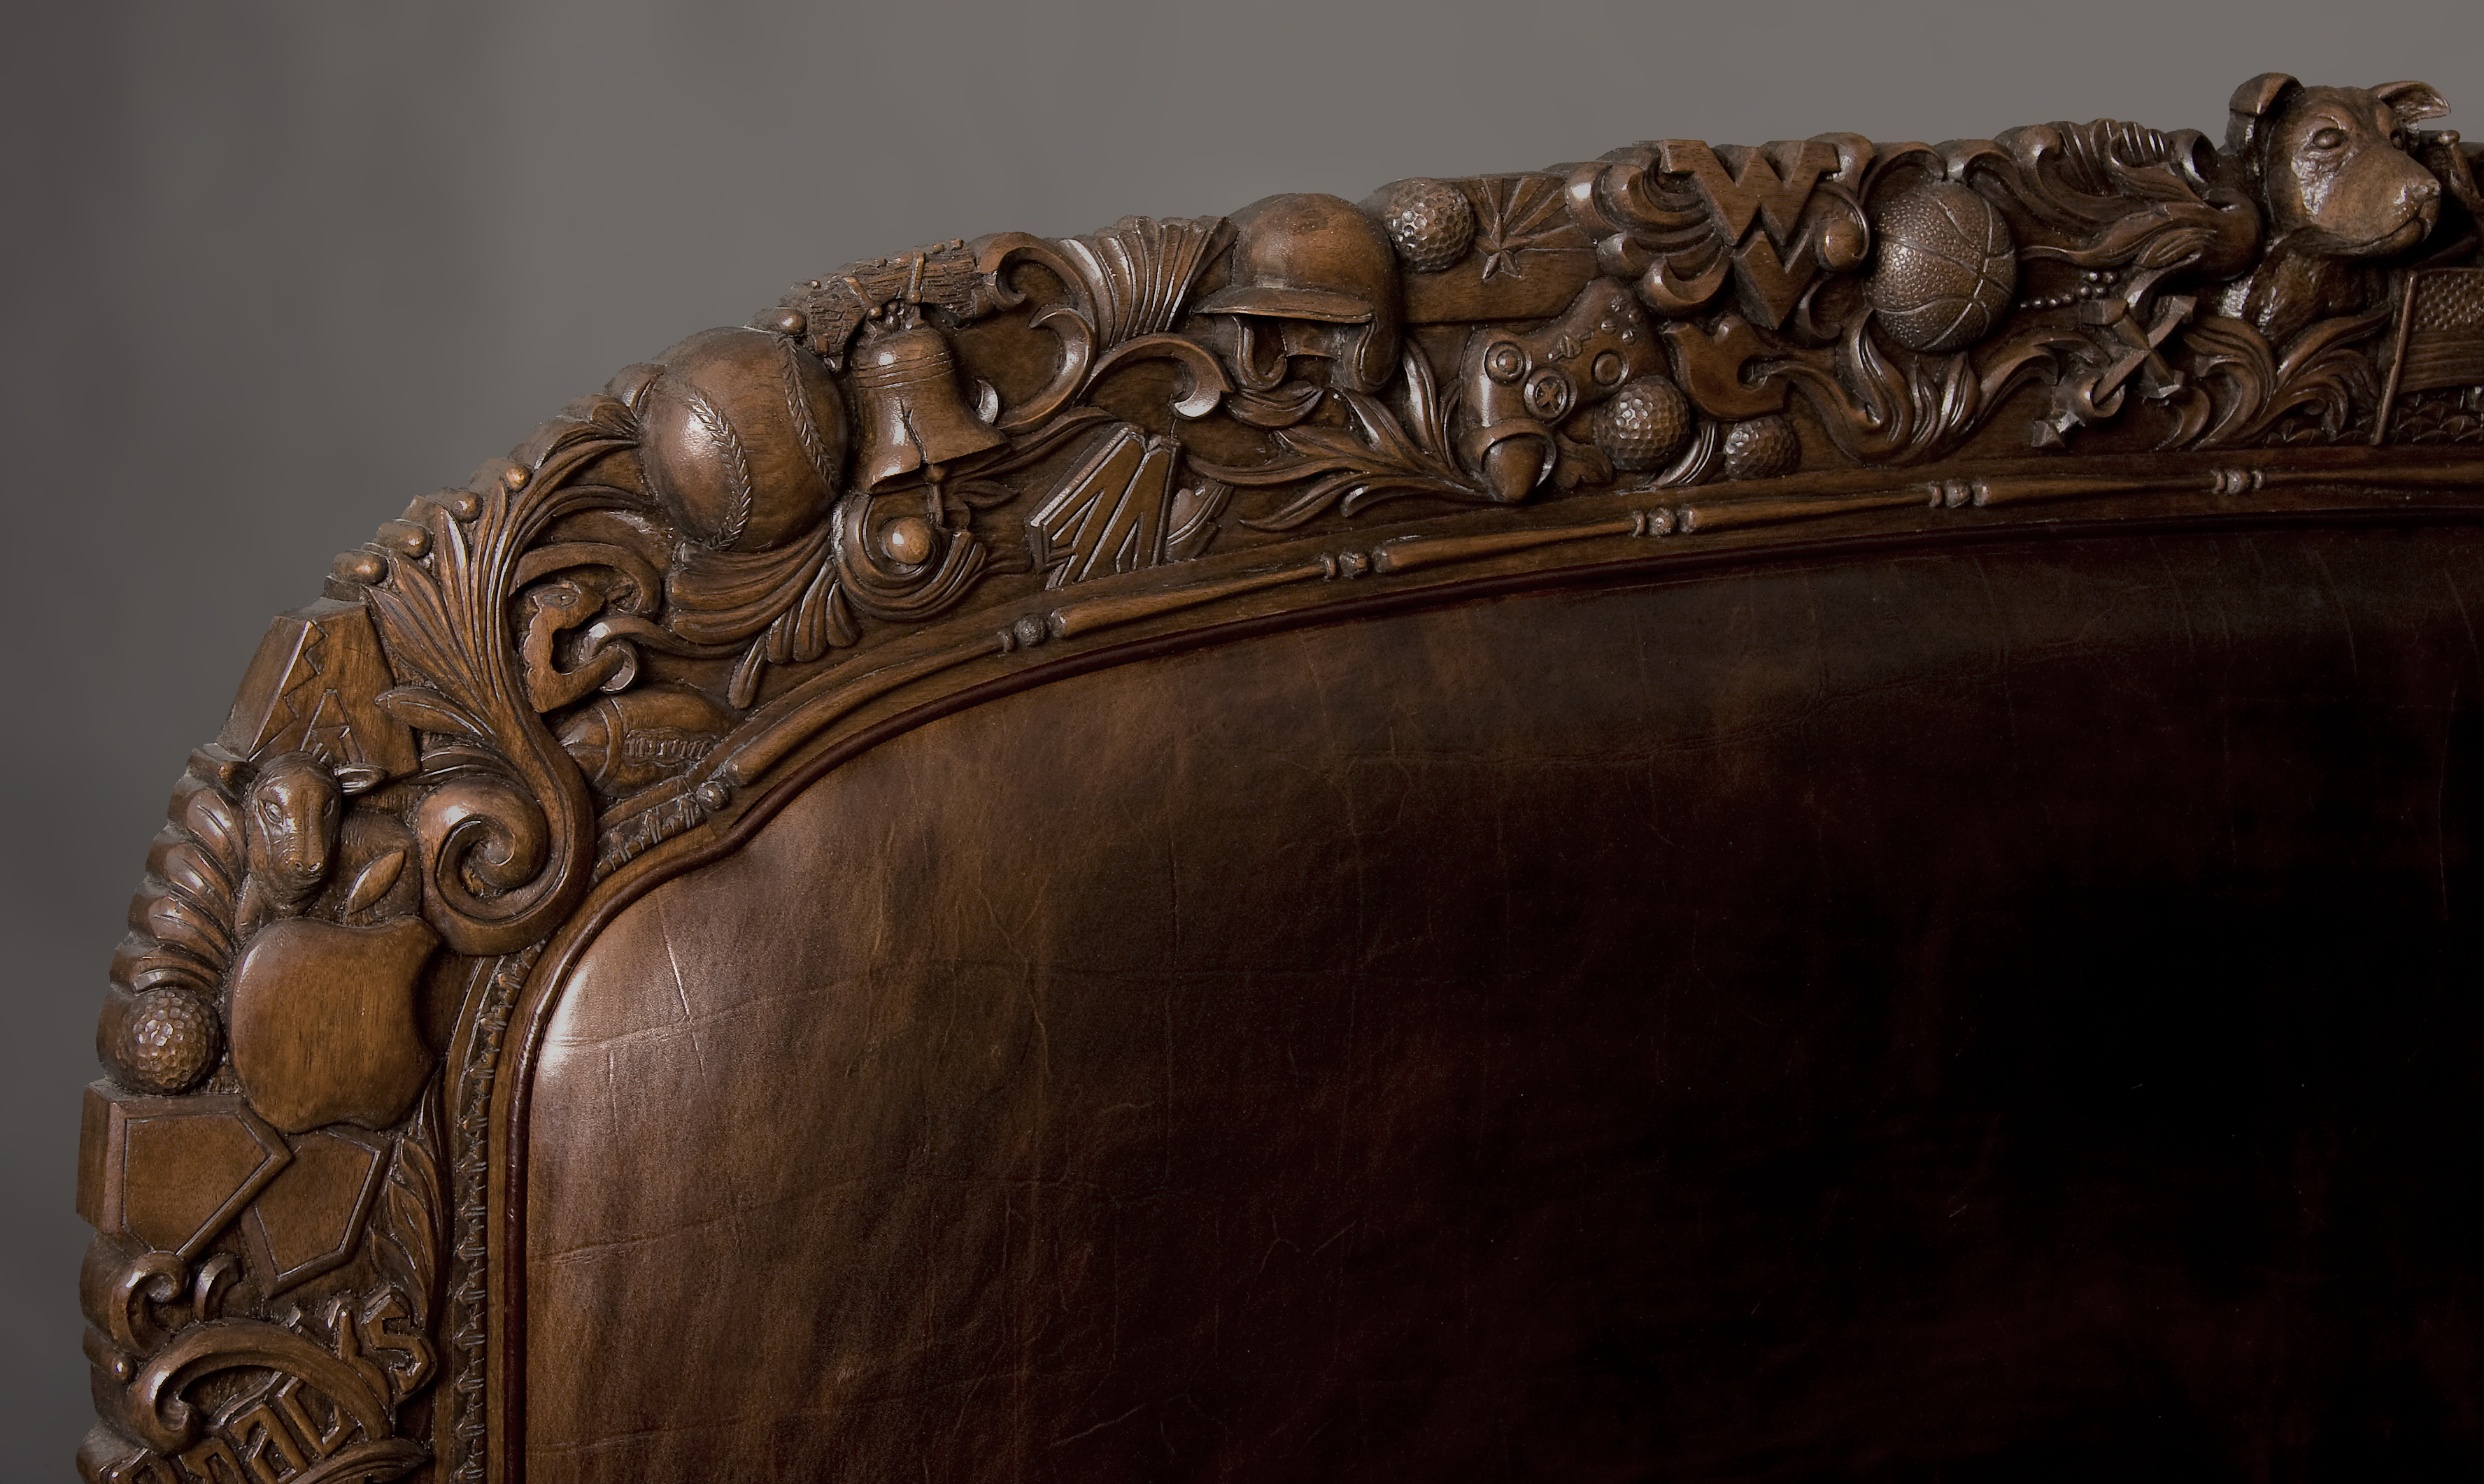 Custom Headboard with carvings